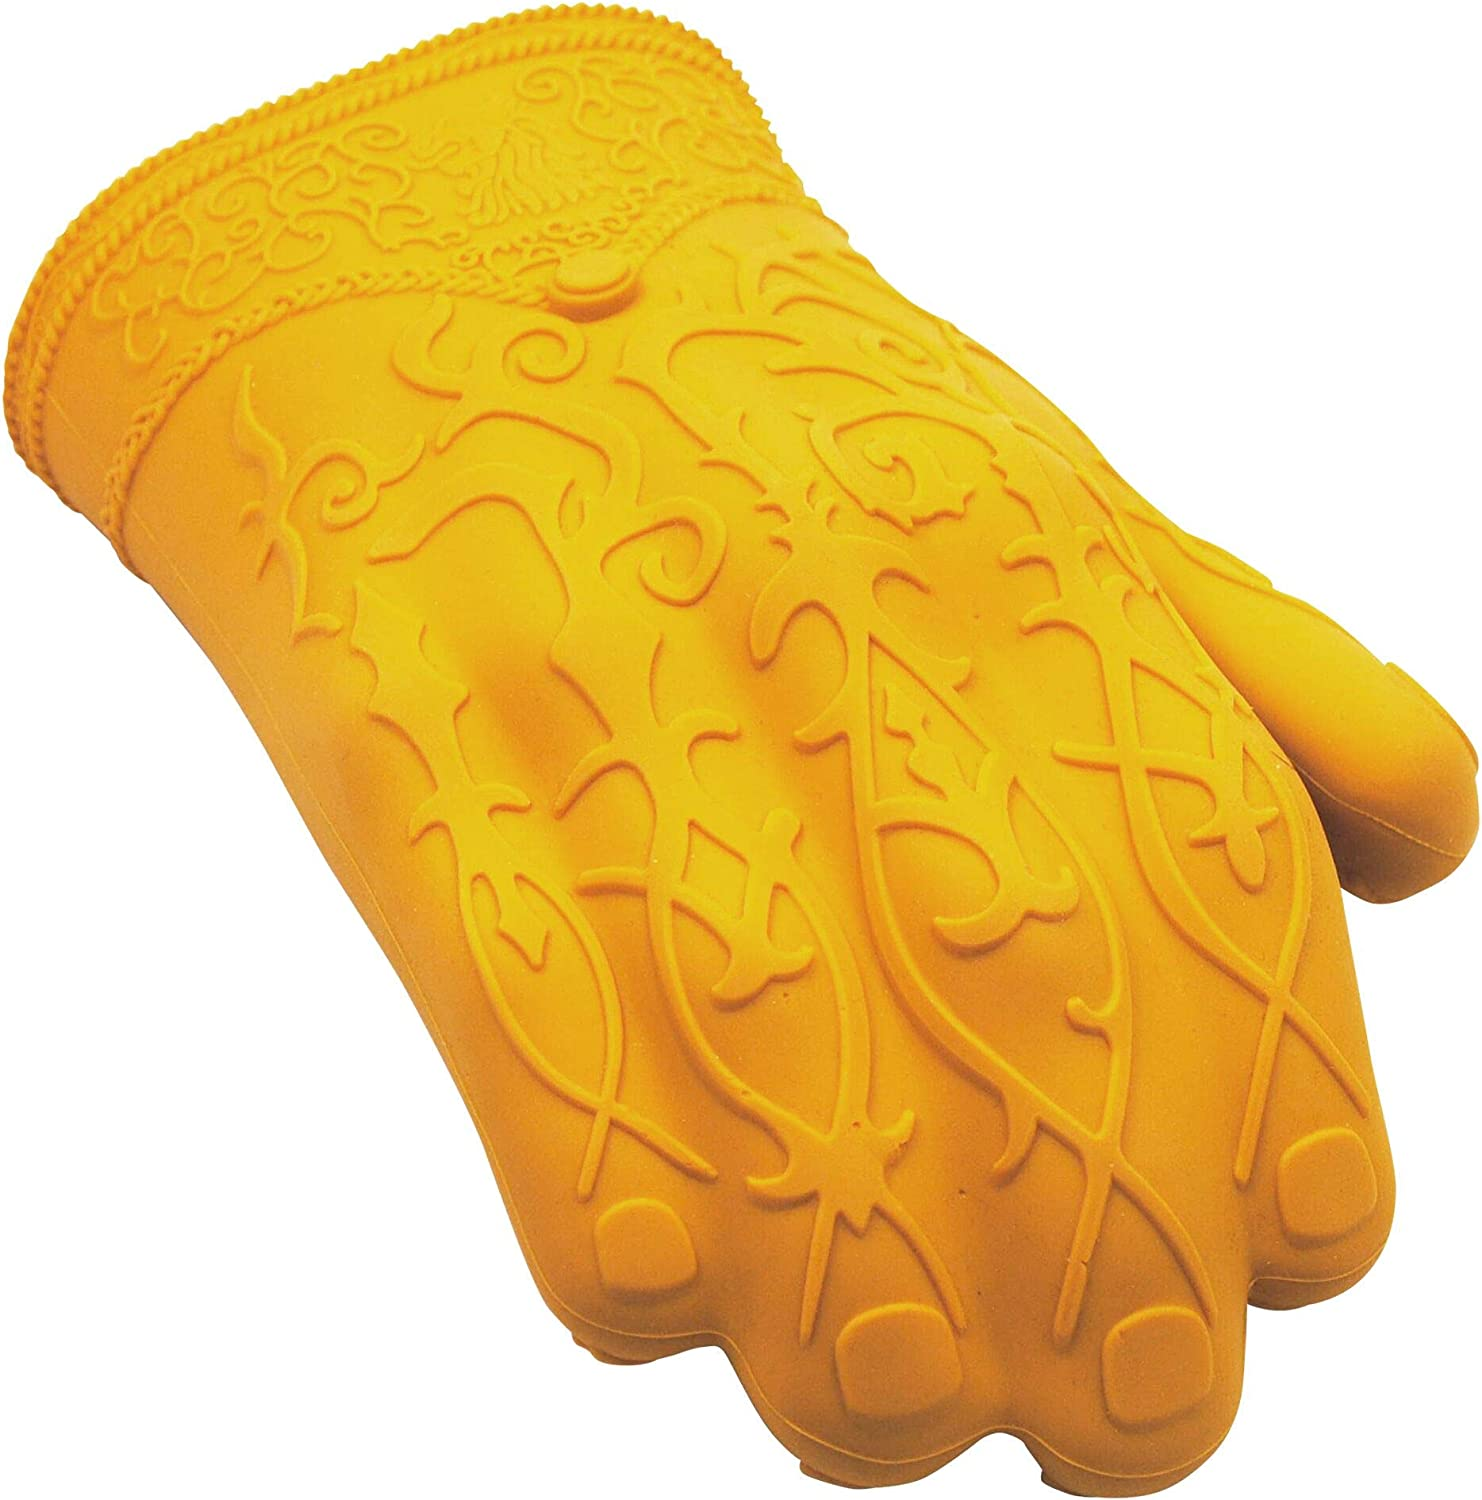 Game of Thrones House Lannister James Golden Hand Silicone Glove | Silicone Oven Mitt | Heat Resistant | Right-Handed Silicon Glove